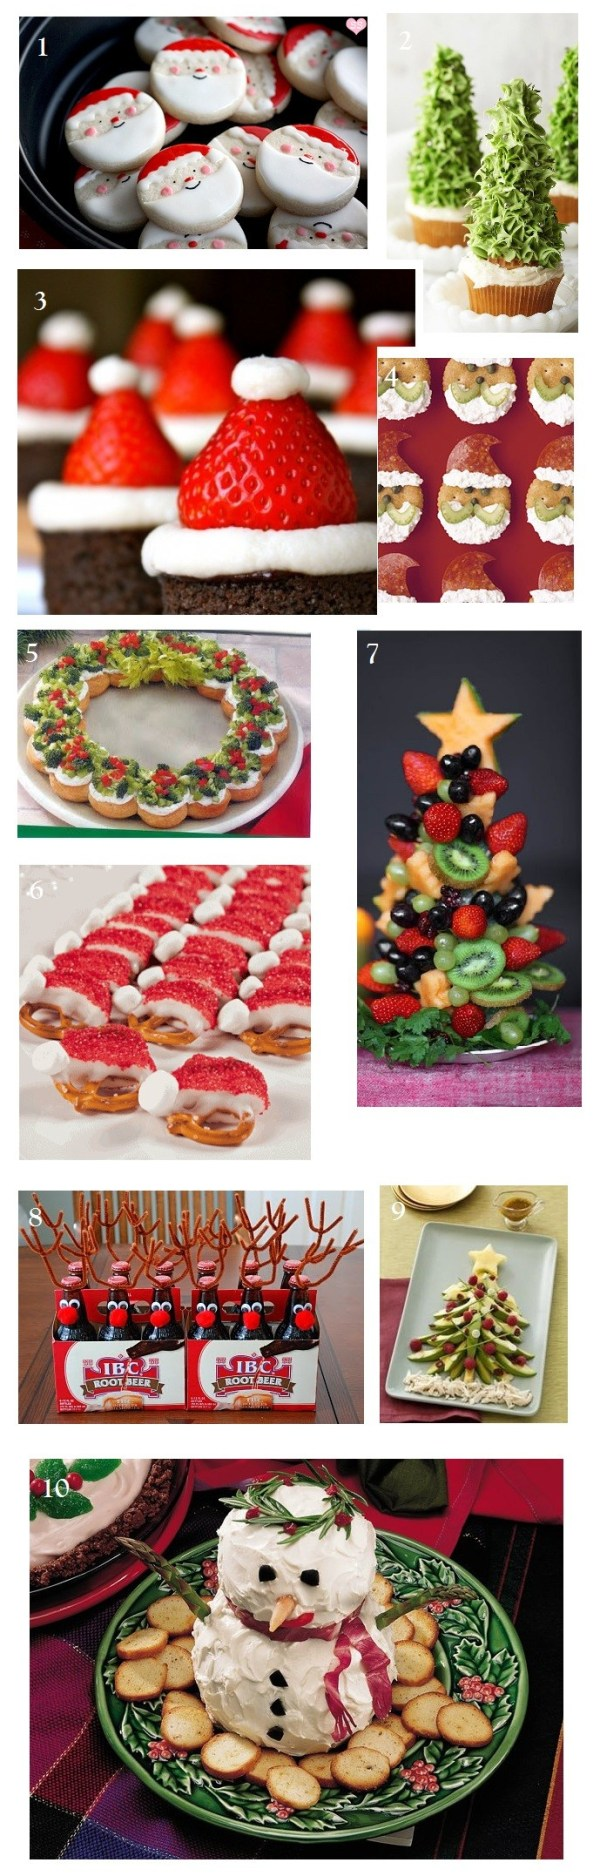 10 Awesome Christmas Party and Holiday Food Ideas and Recipes